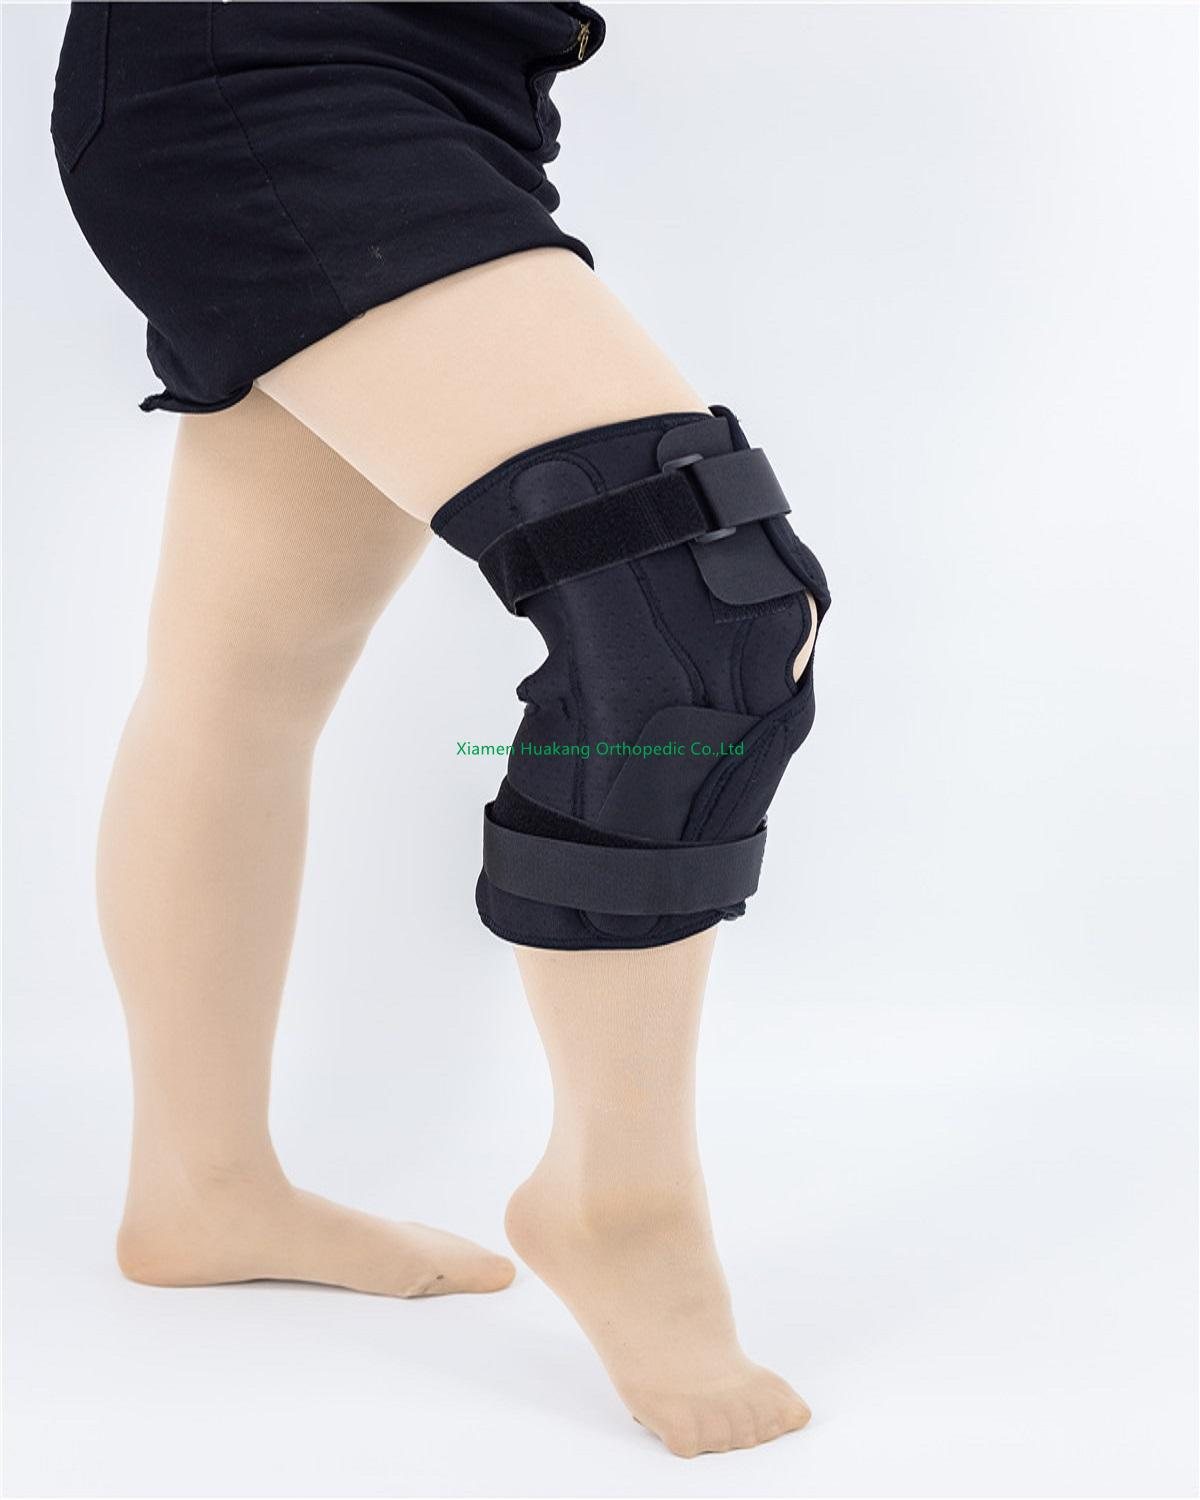 DOUBLE HINGED KNEE SLEEVES ALUMINUM STAYS